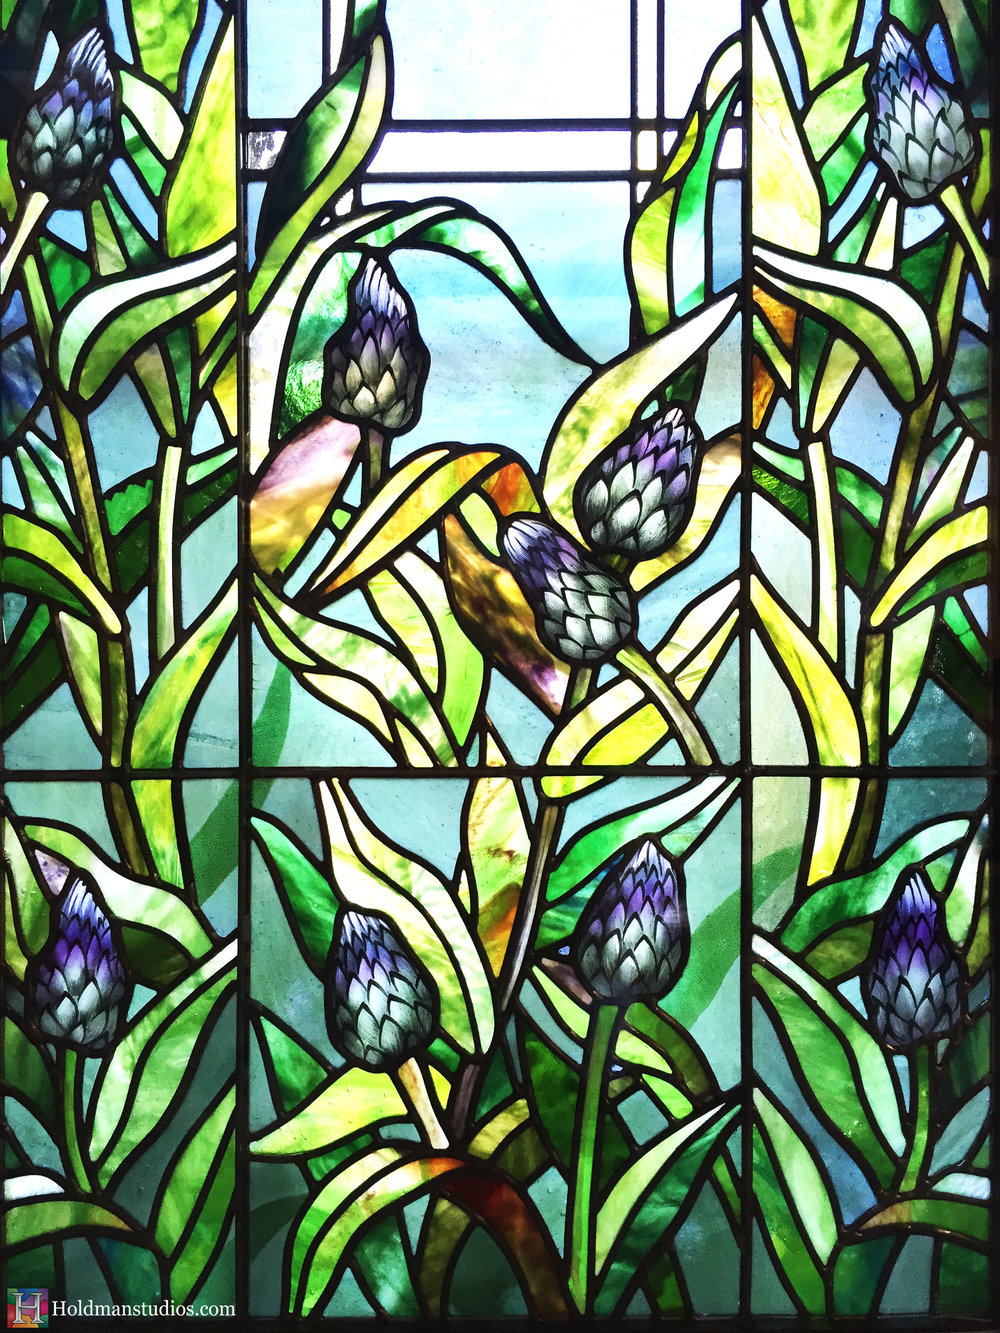 Holdman-Studios-Stained-Glass-Paris-LDS-Temple-Cornflower-Blue-Lily-Flower-Buds-Leaves-Closeup-Window.jpg